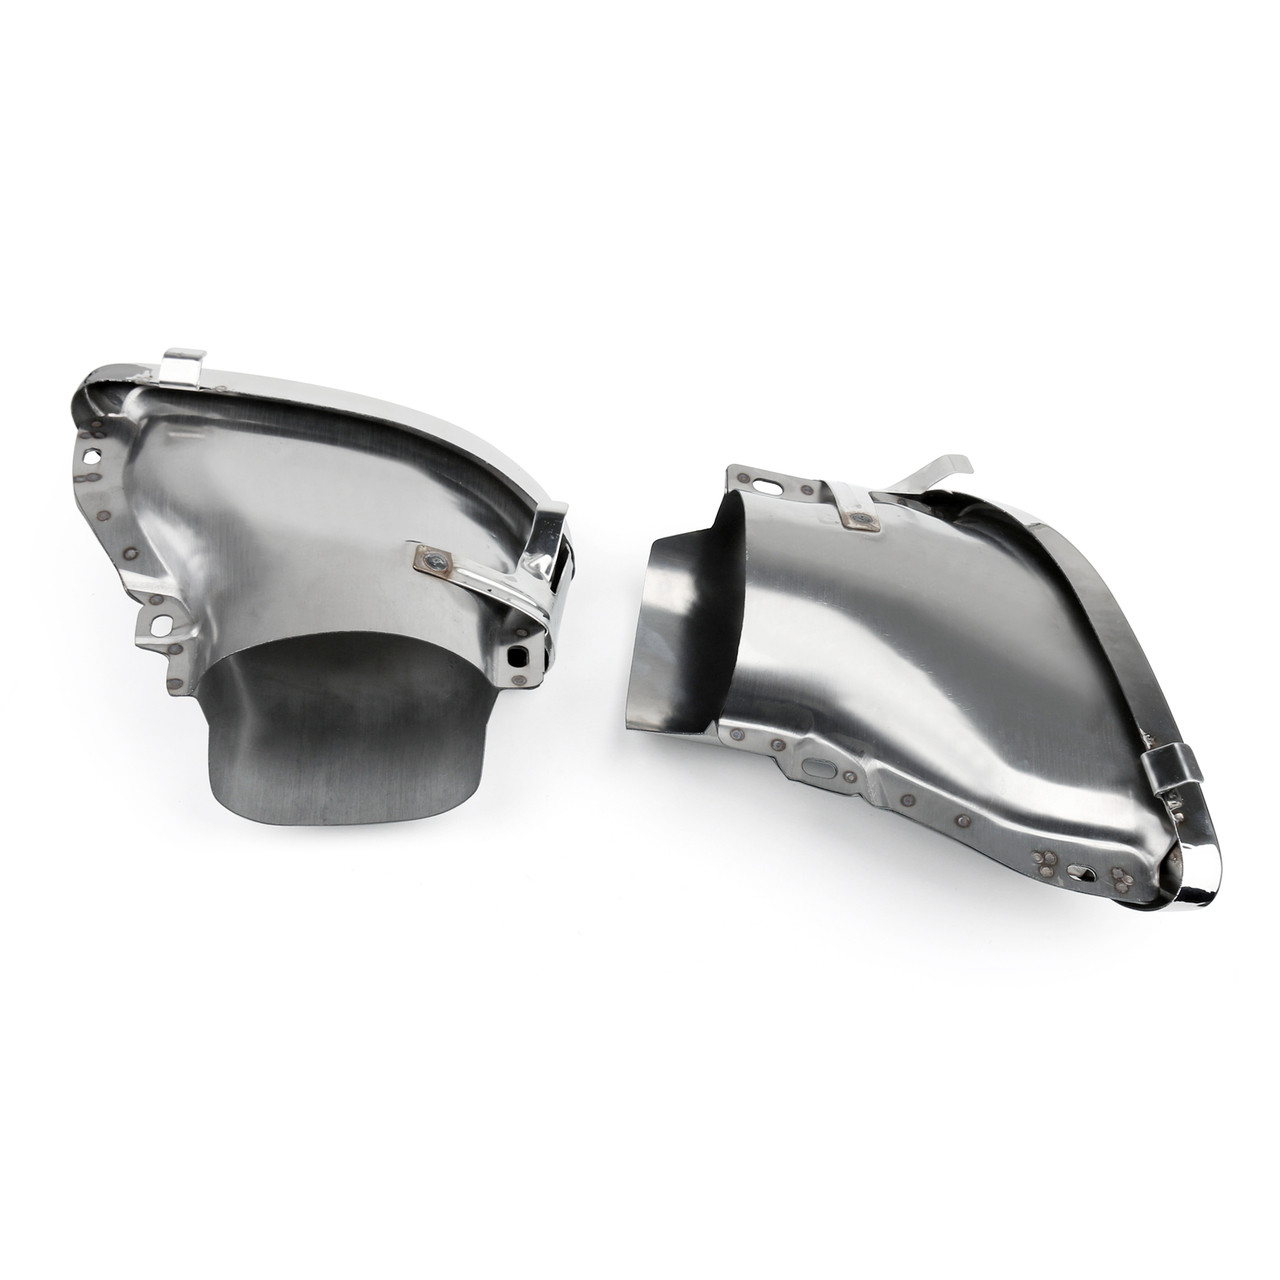 Dual Exhaust Pipes Tail Muffler Tips Benz W212 (2014-2016), Silver